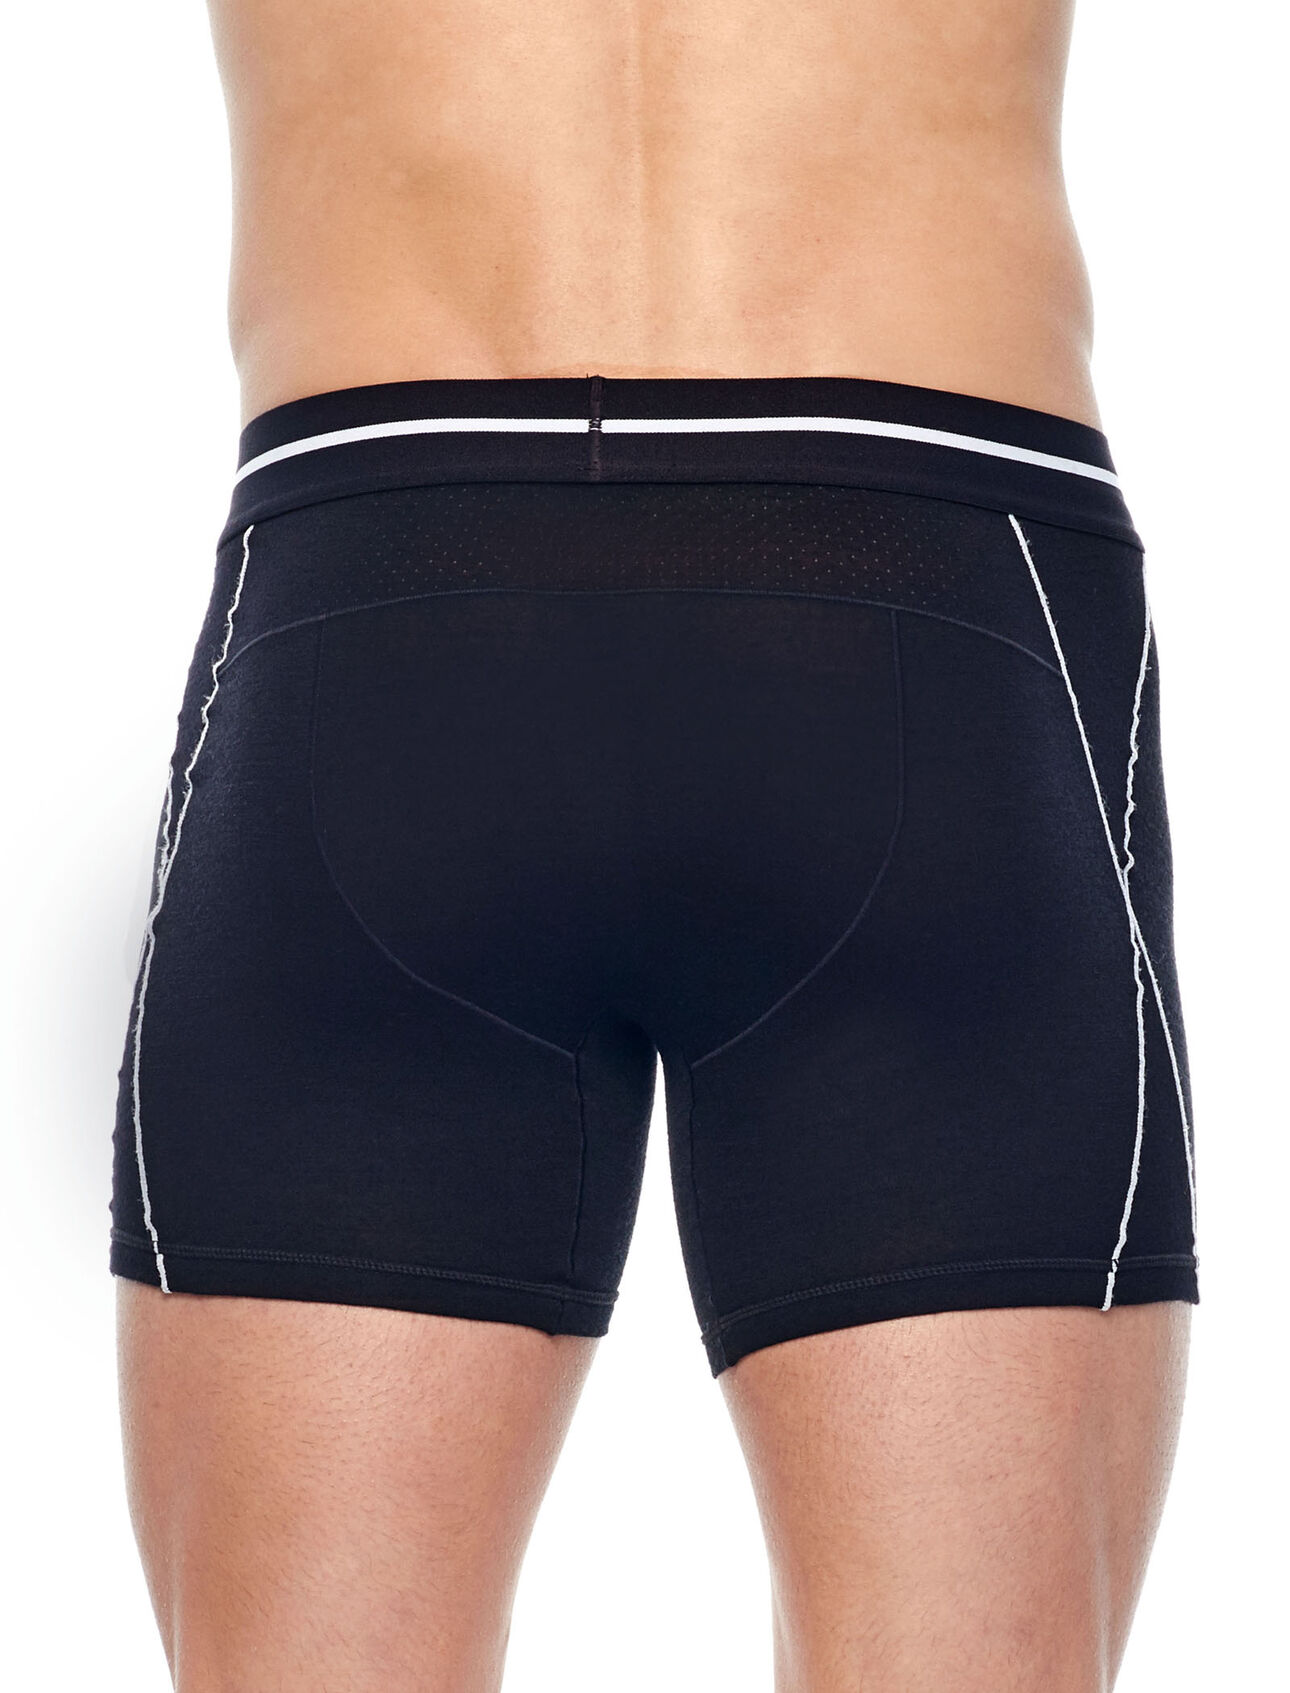 sports comfortable these products boxers comforter em down for made lock intense pin were boxer seriously